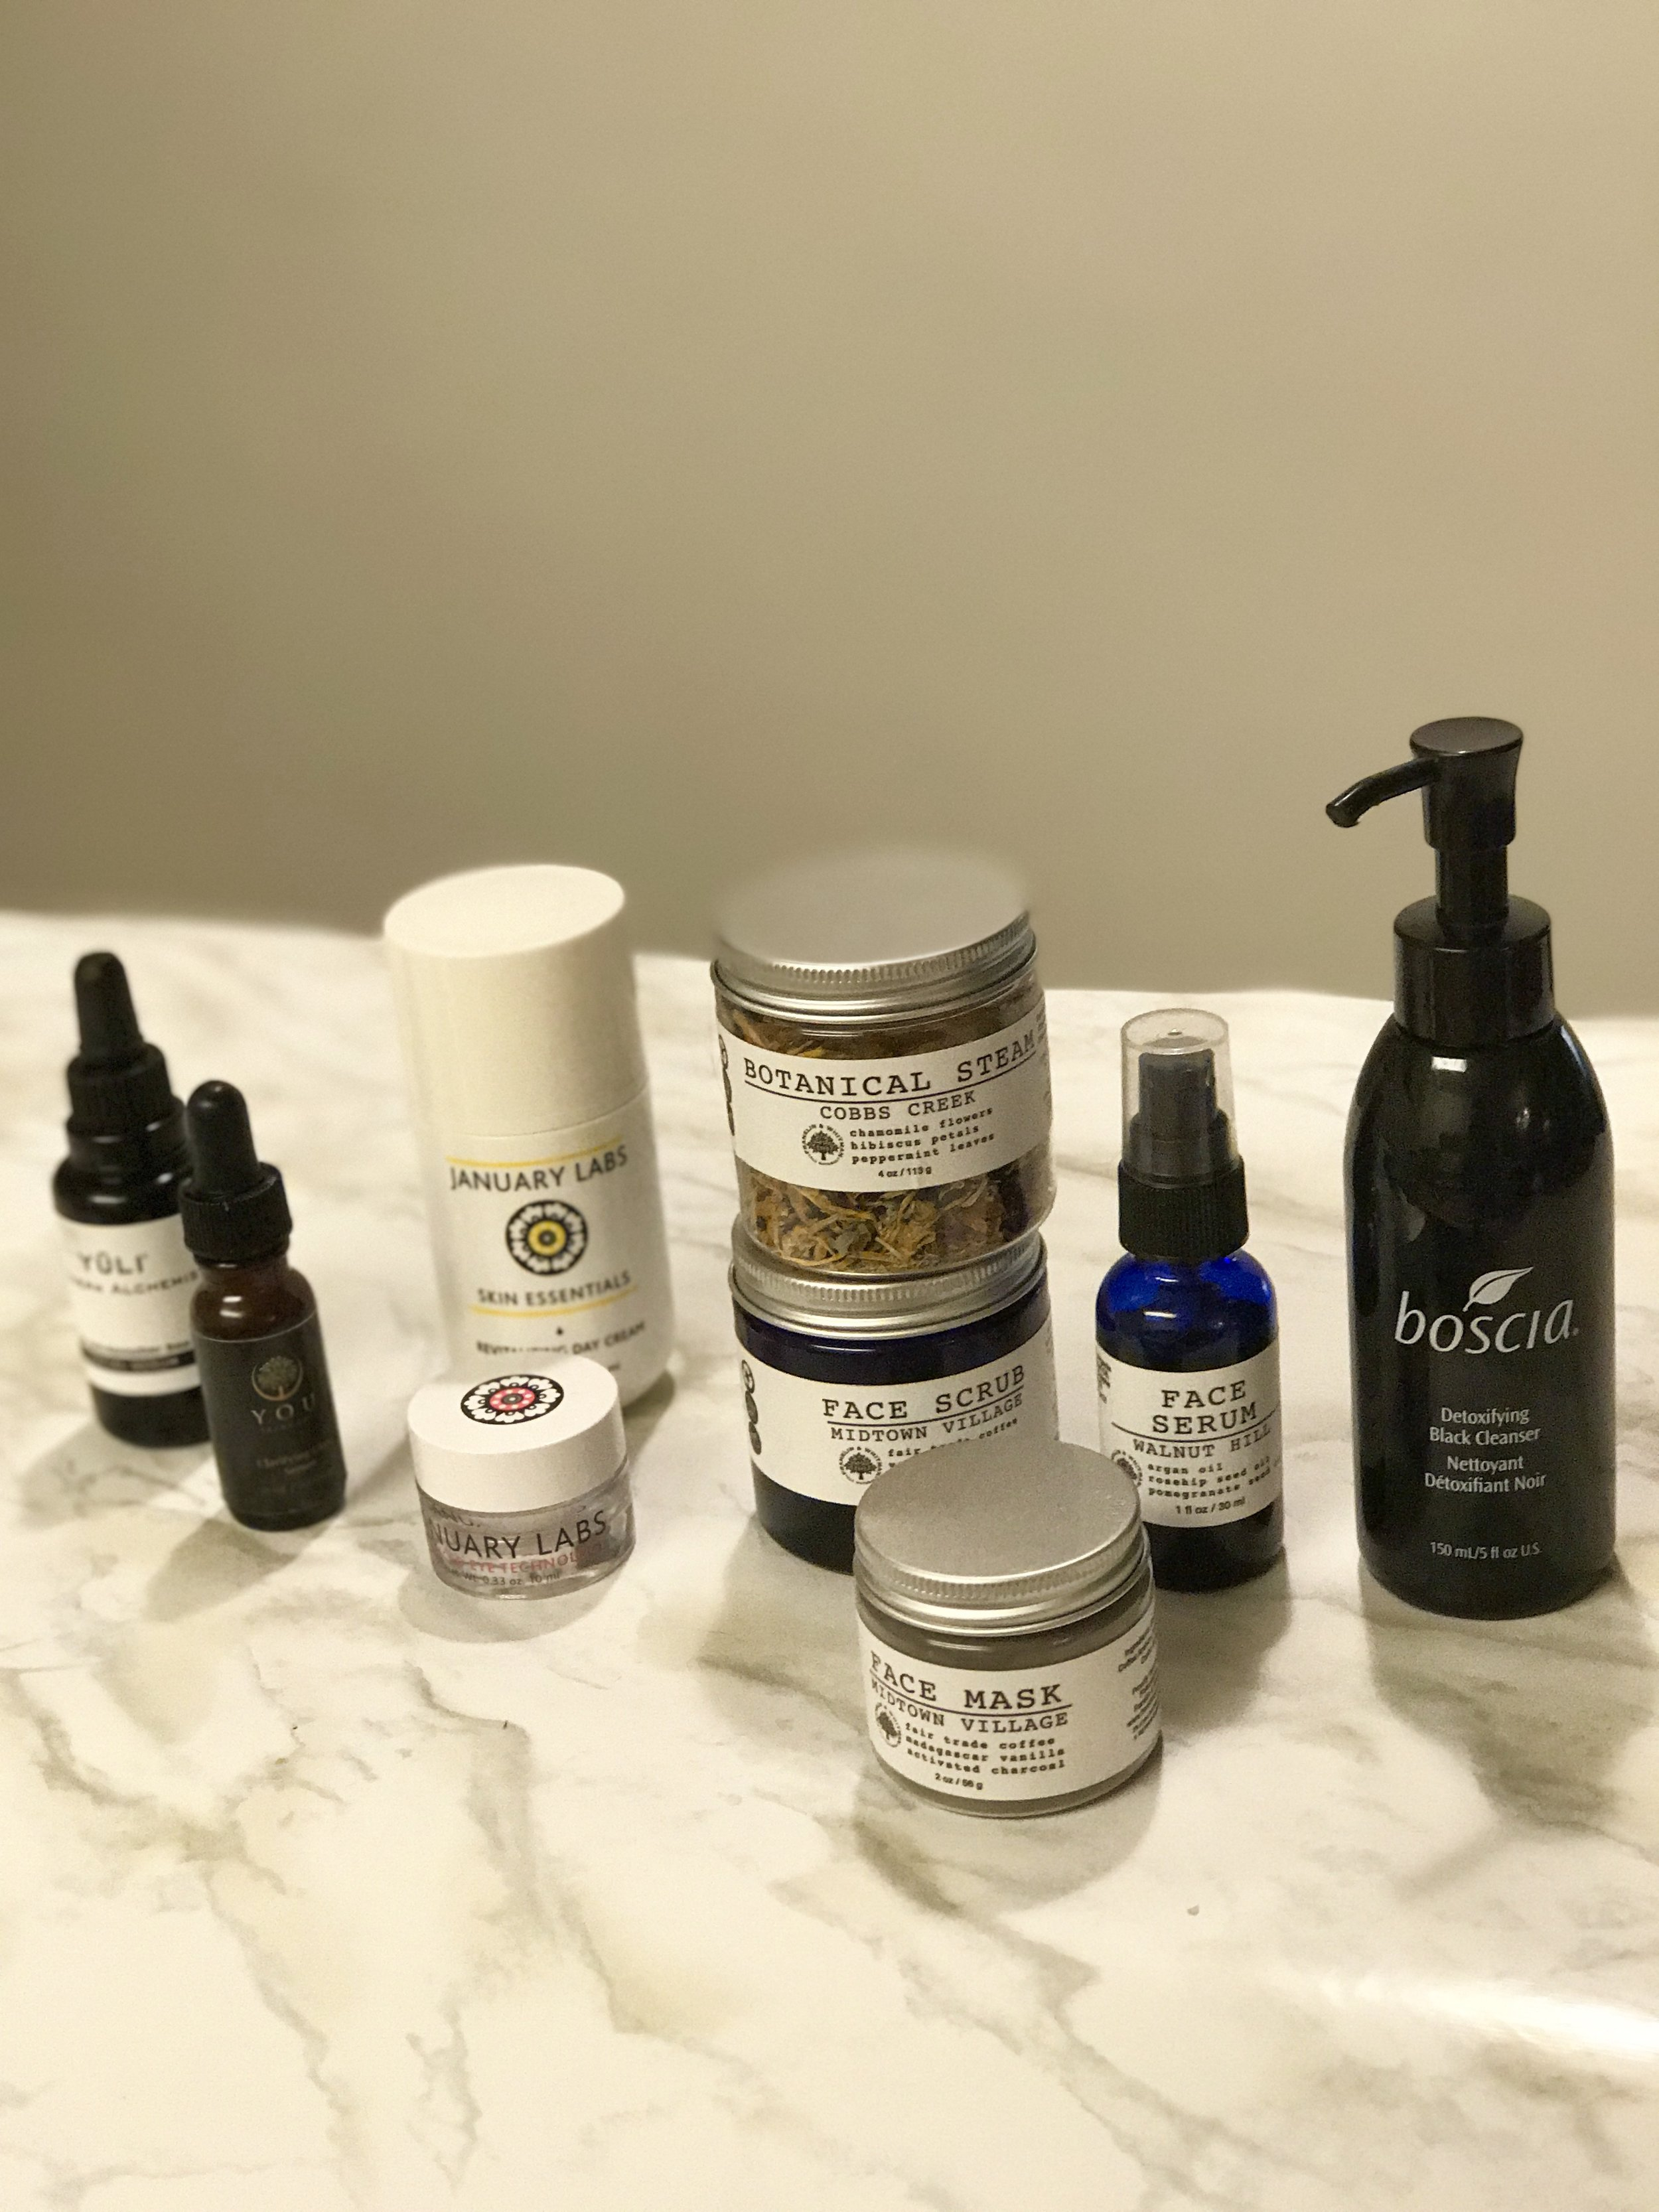 I used to use whatever skincare on my face, and (face palm), usually the more fake-o fragrance the better! I've come a long way since then. Pictured from left to right. 1.  Yuli Modern Alchemist  2.  You.Skincare Clarifying Glow Serum  3.  January Labs Revitalizing Day Cream  4.  January Labs Advanced Eye Technology  5.  This Facial Care Kit from Franklin & Whitman  when I want to do a facial AND 6.  Boscia Detoxifying Black Cleanser for every day use.